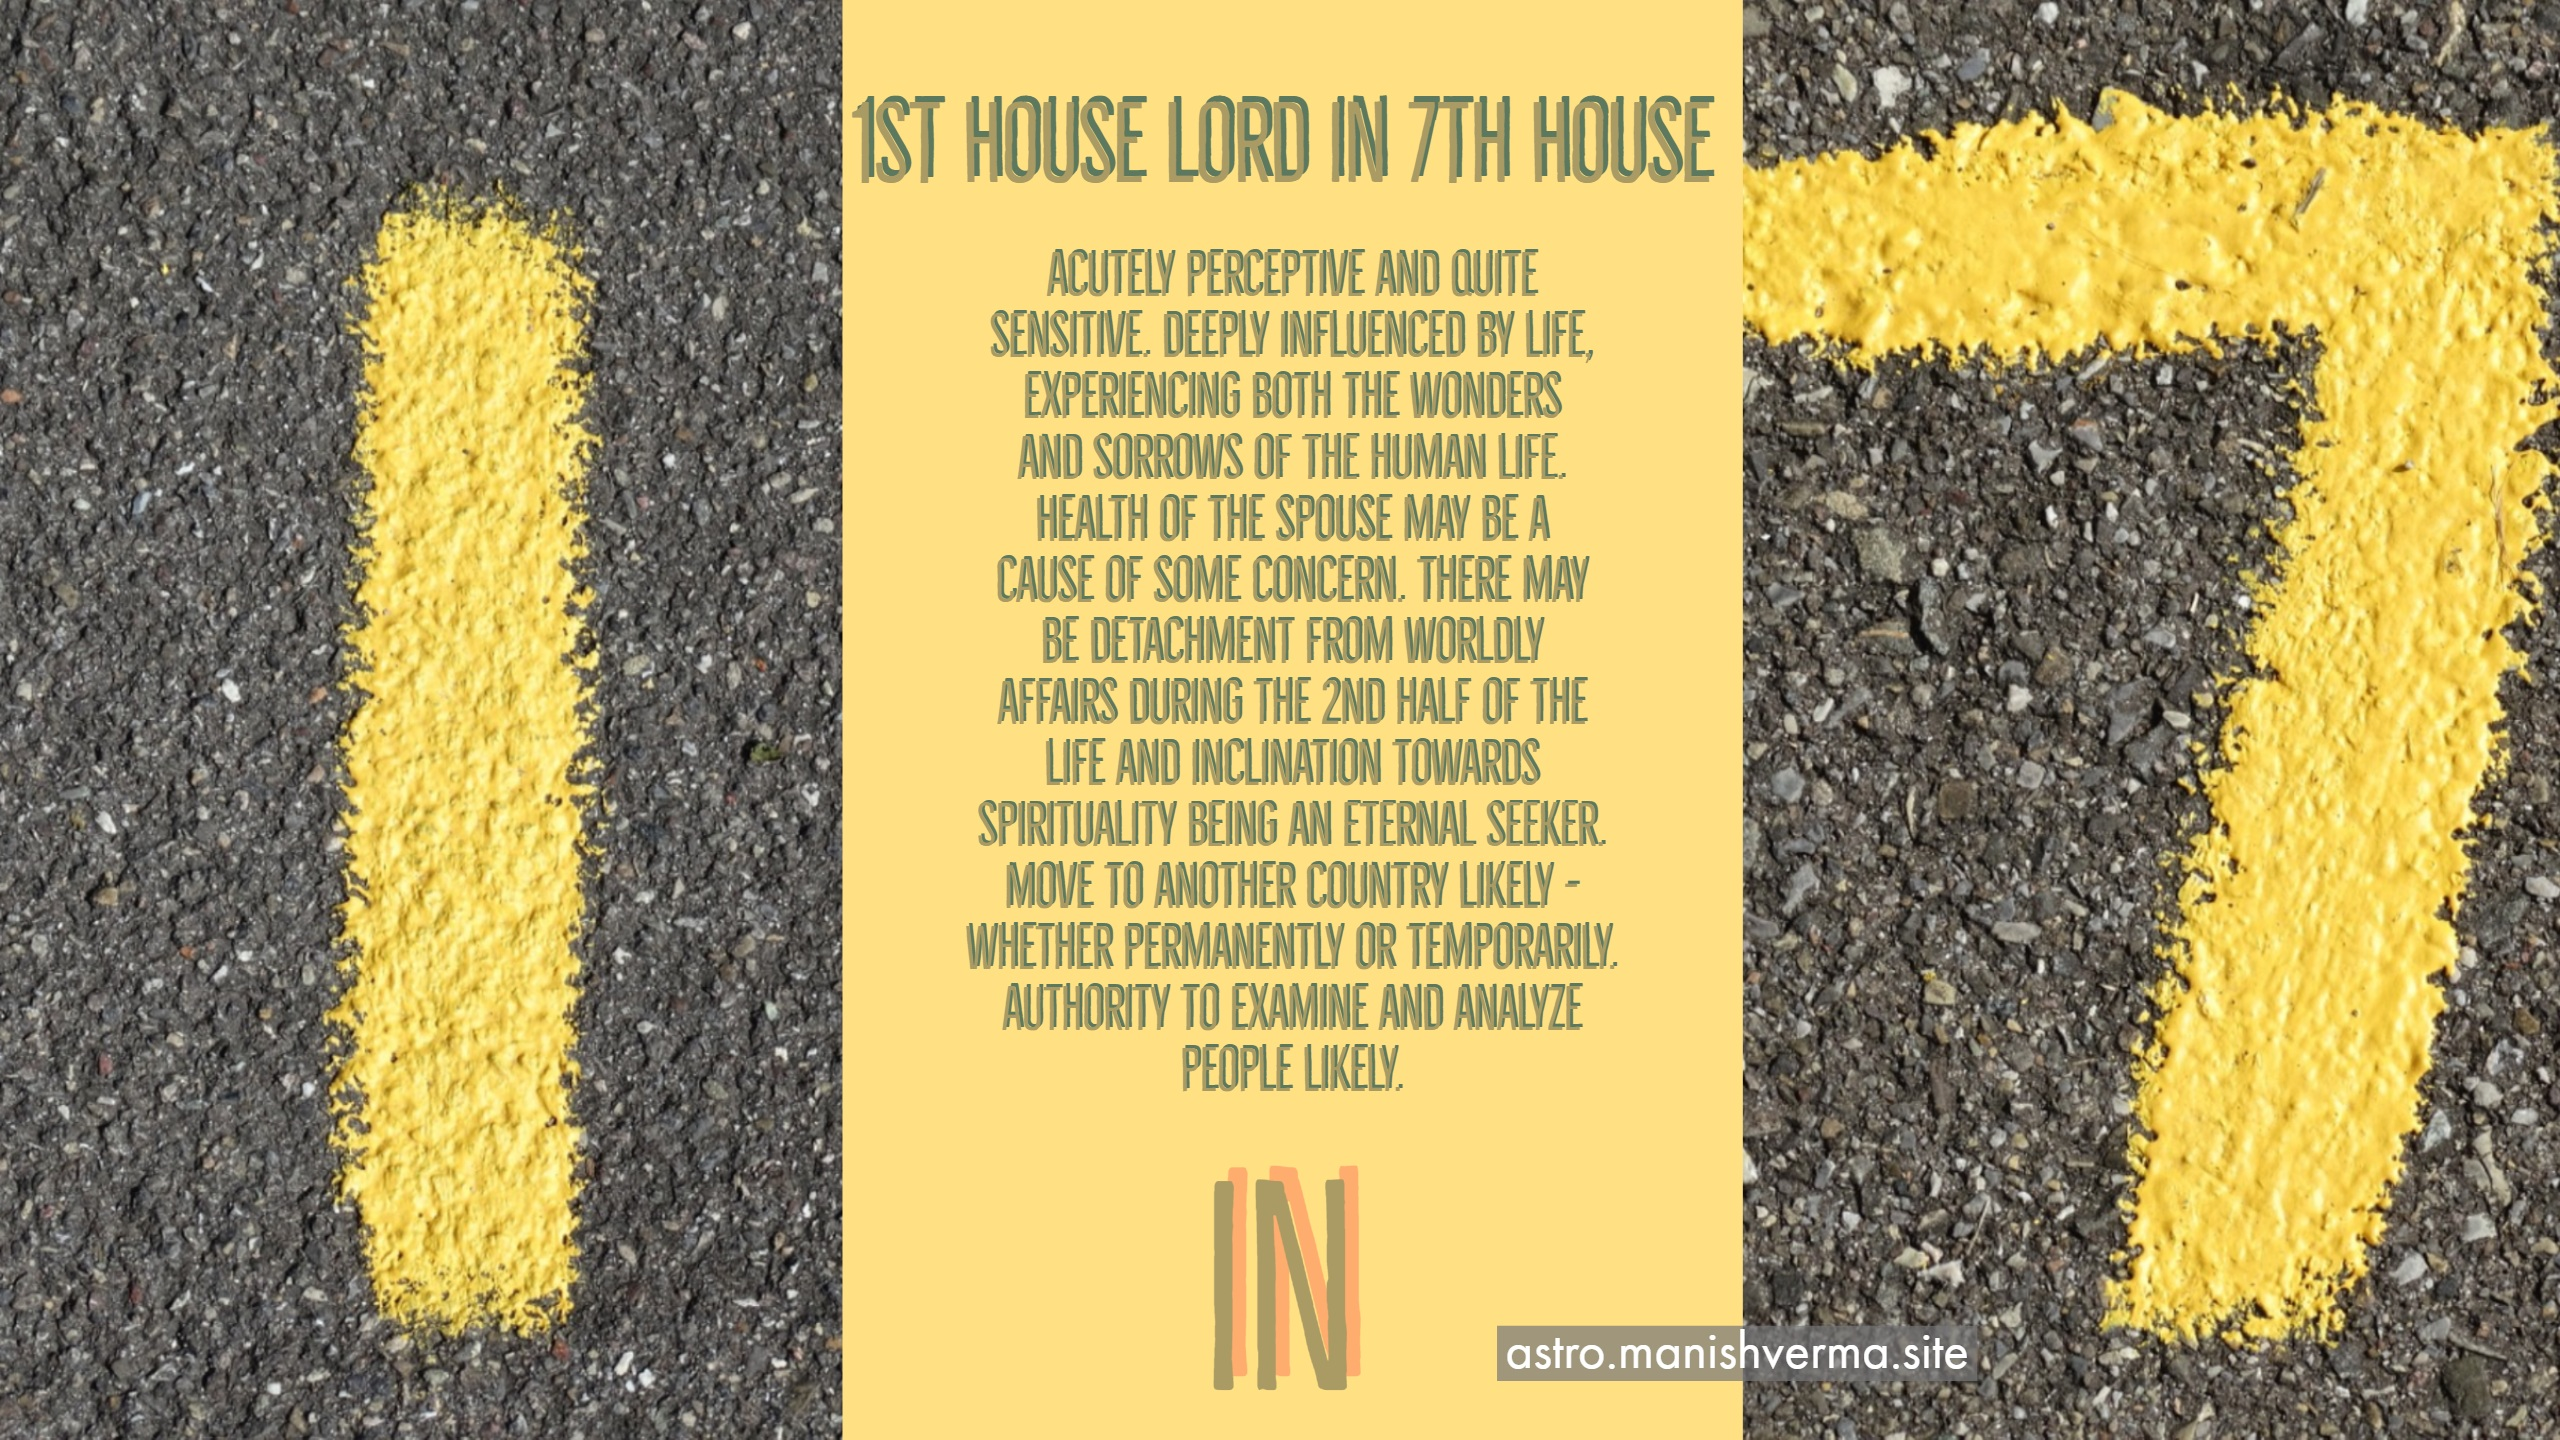 10th and 11th lord in 7th house